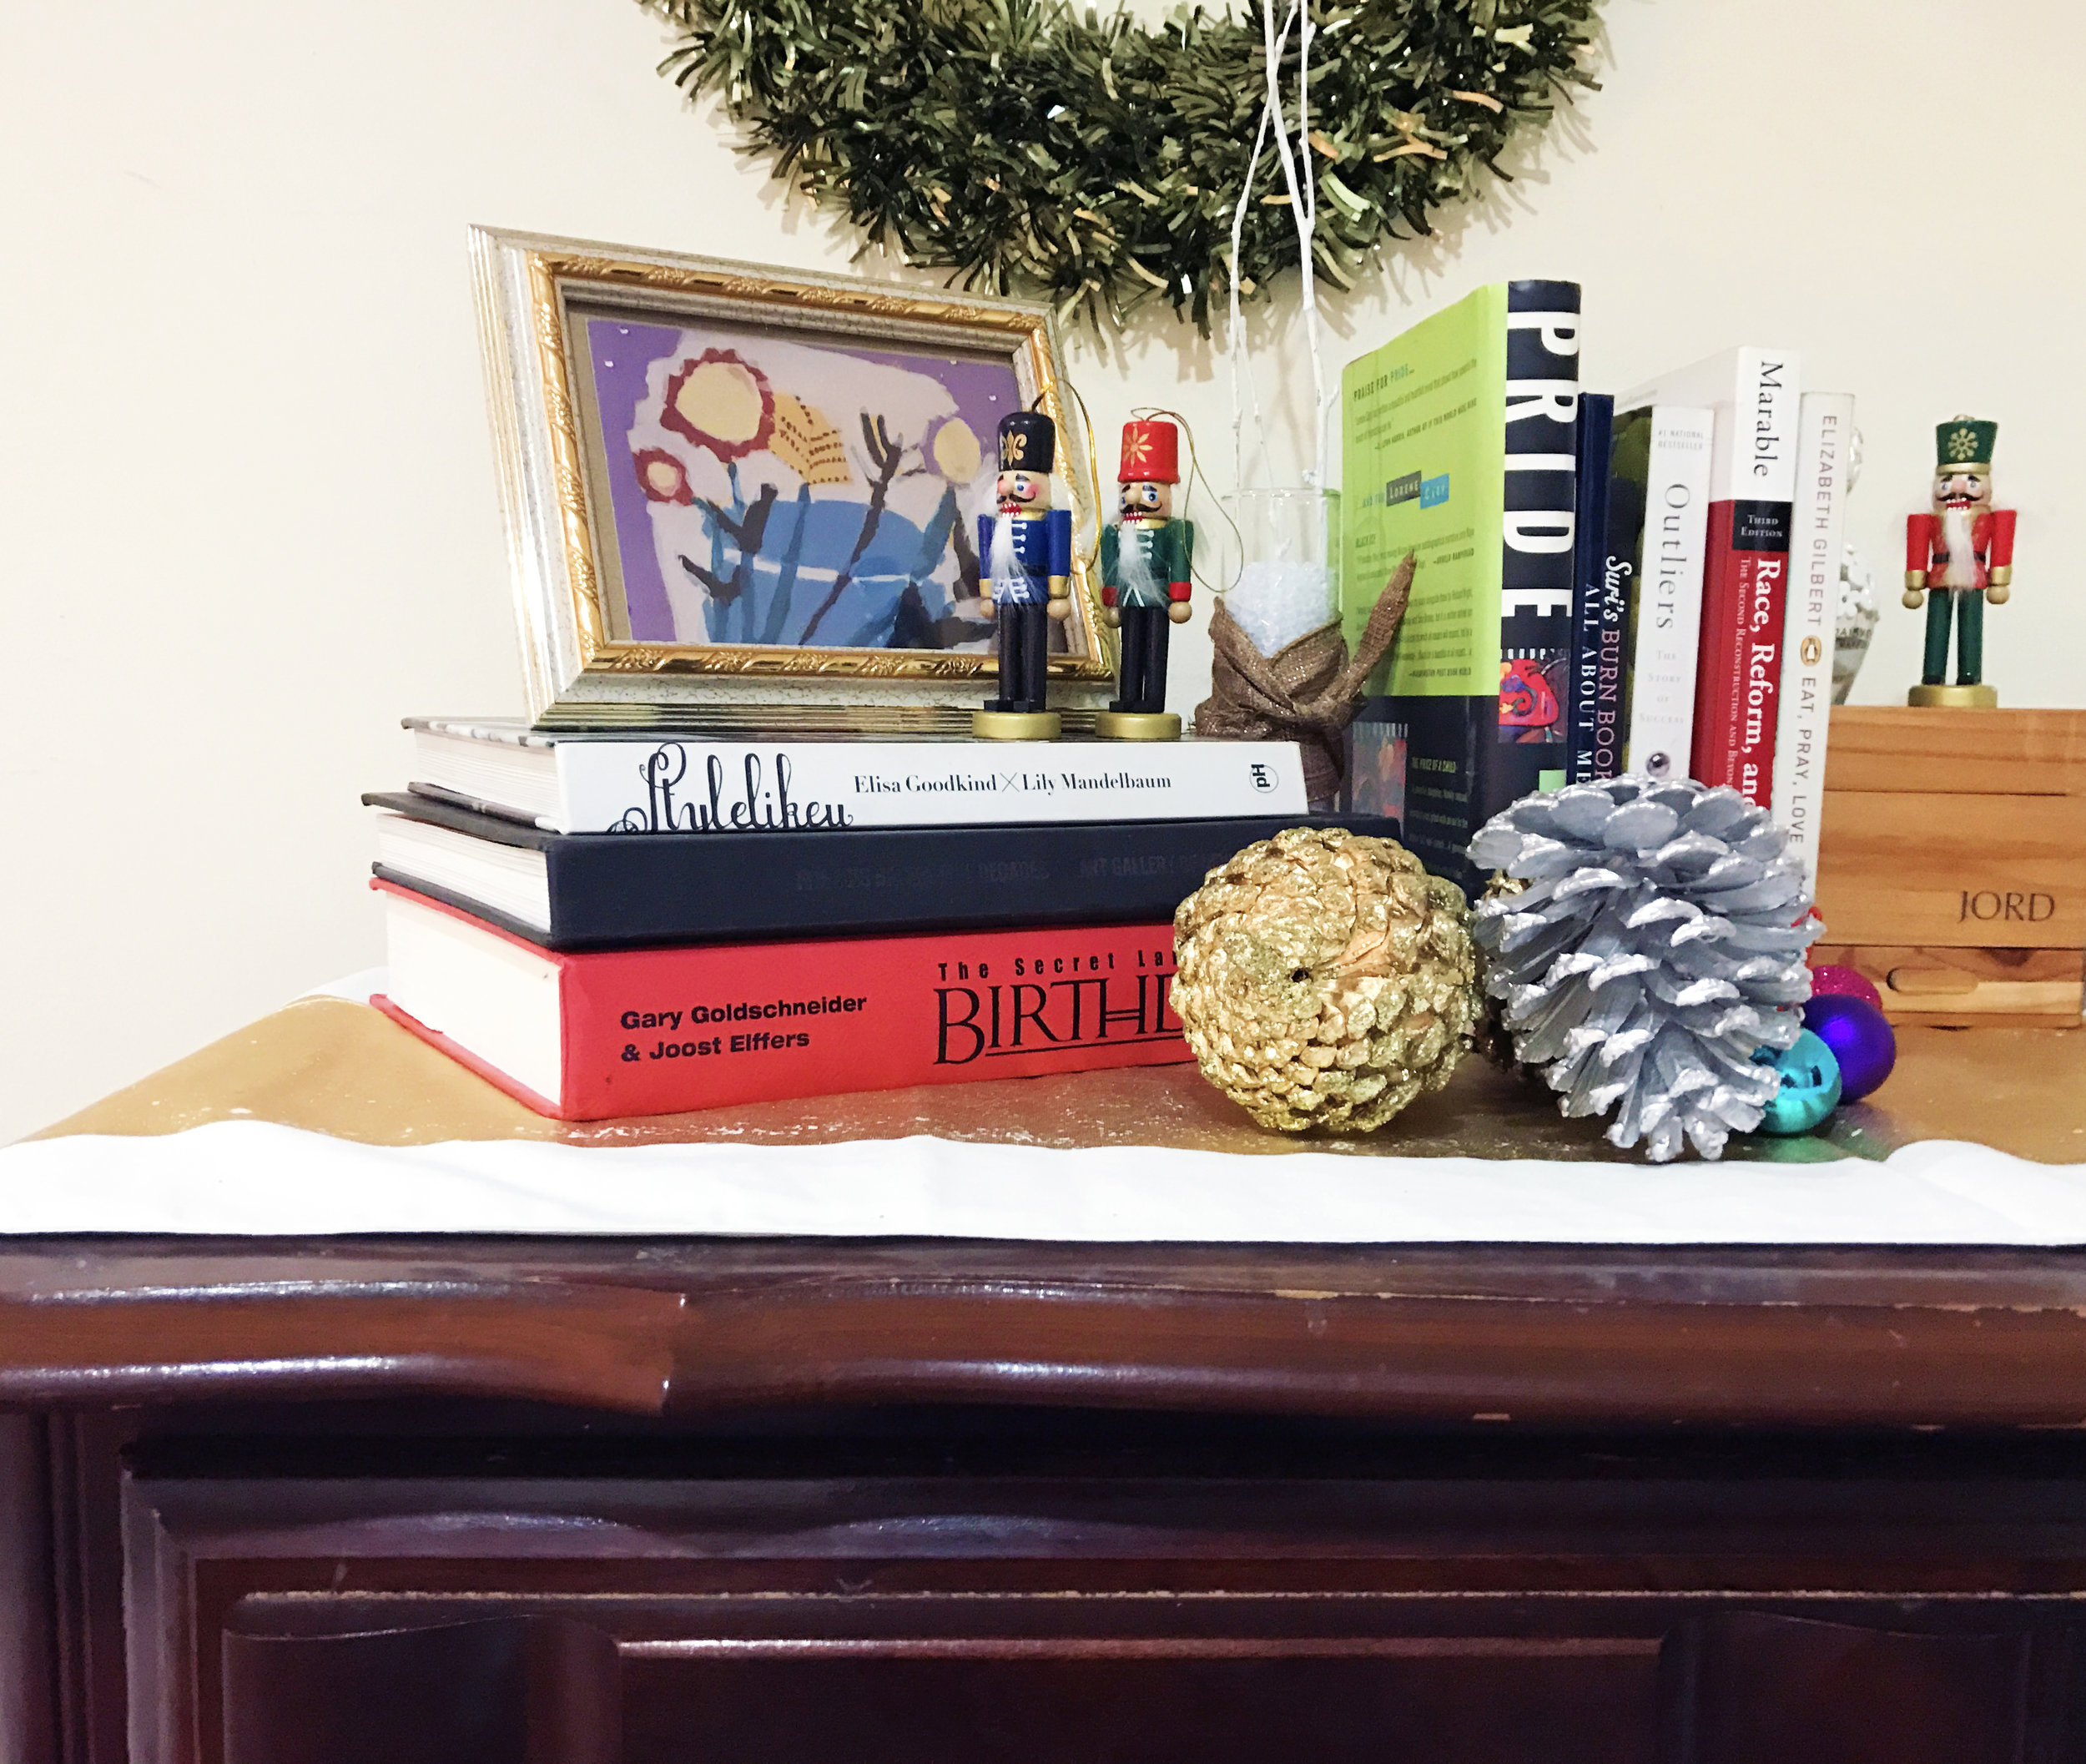 A mix of personal objects and Christmas decorations.